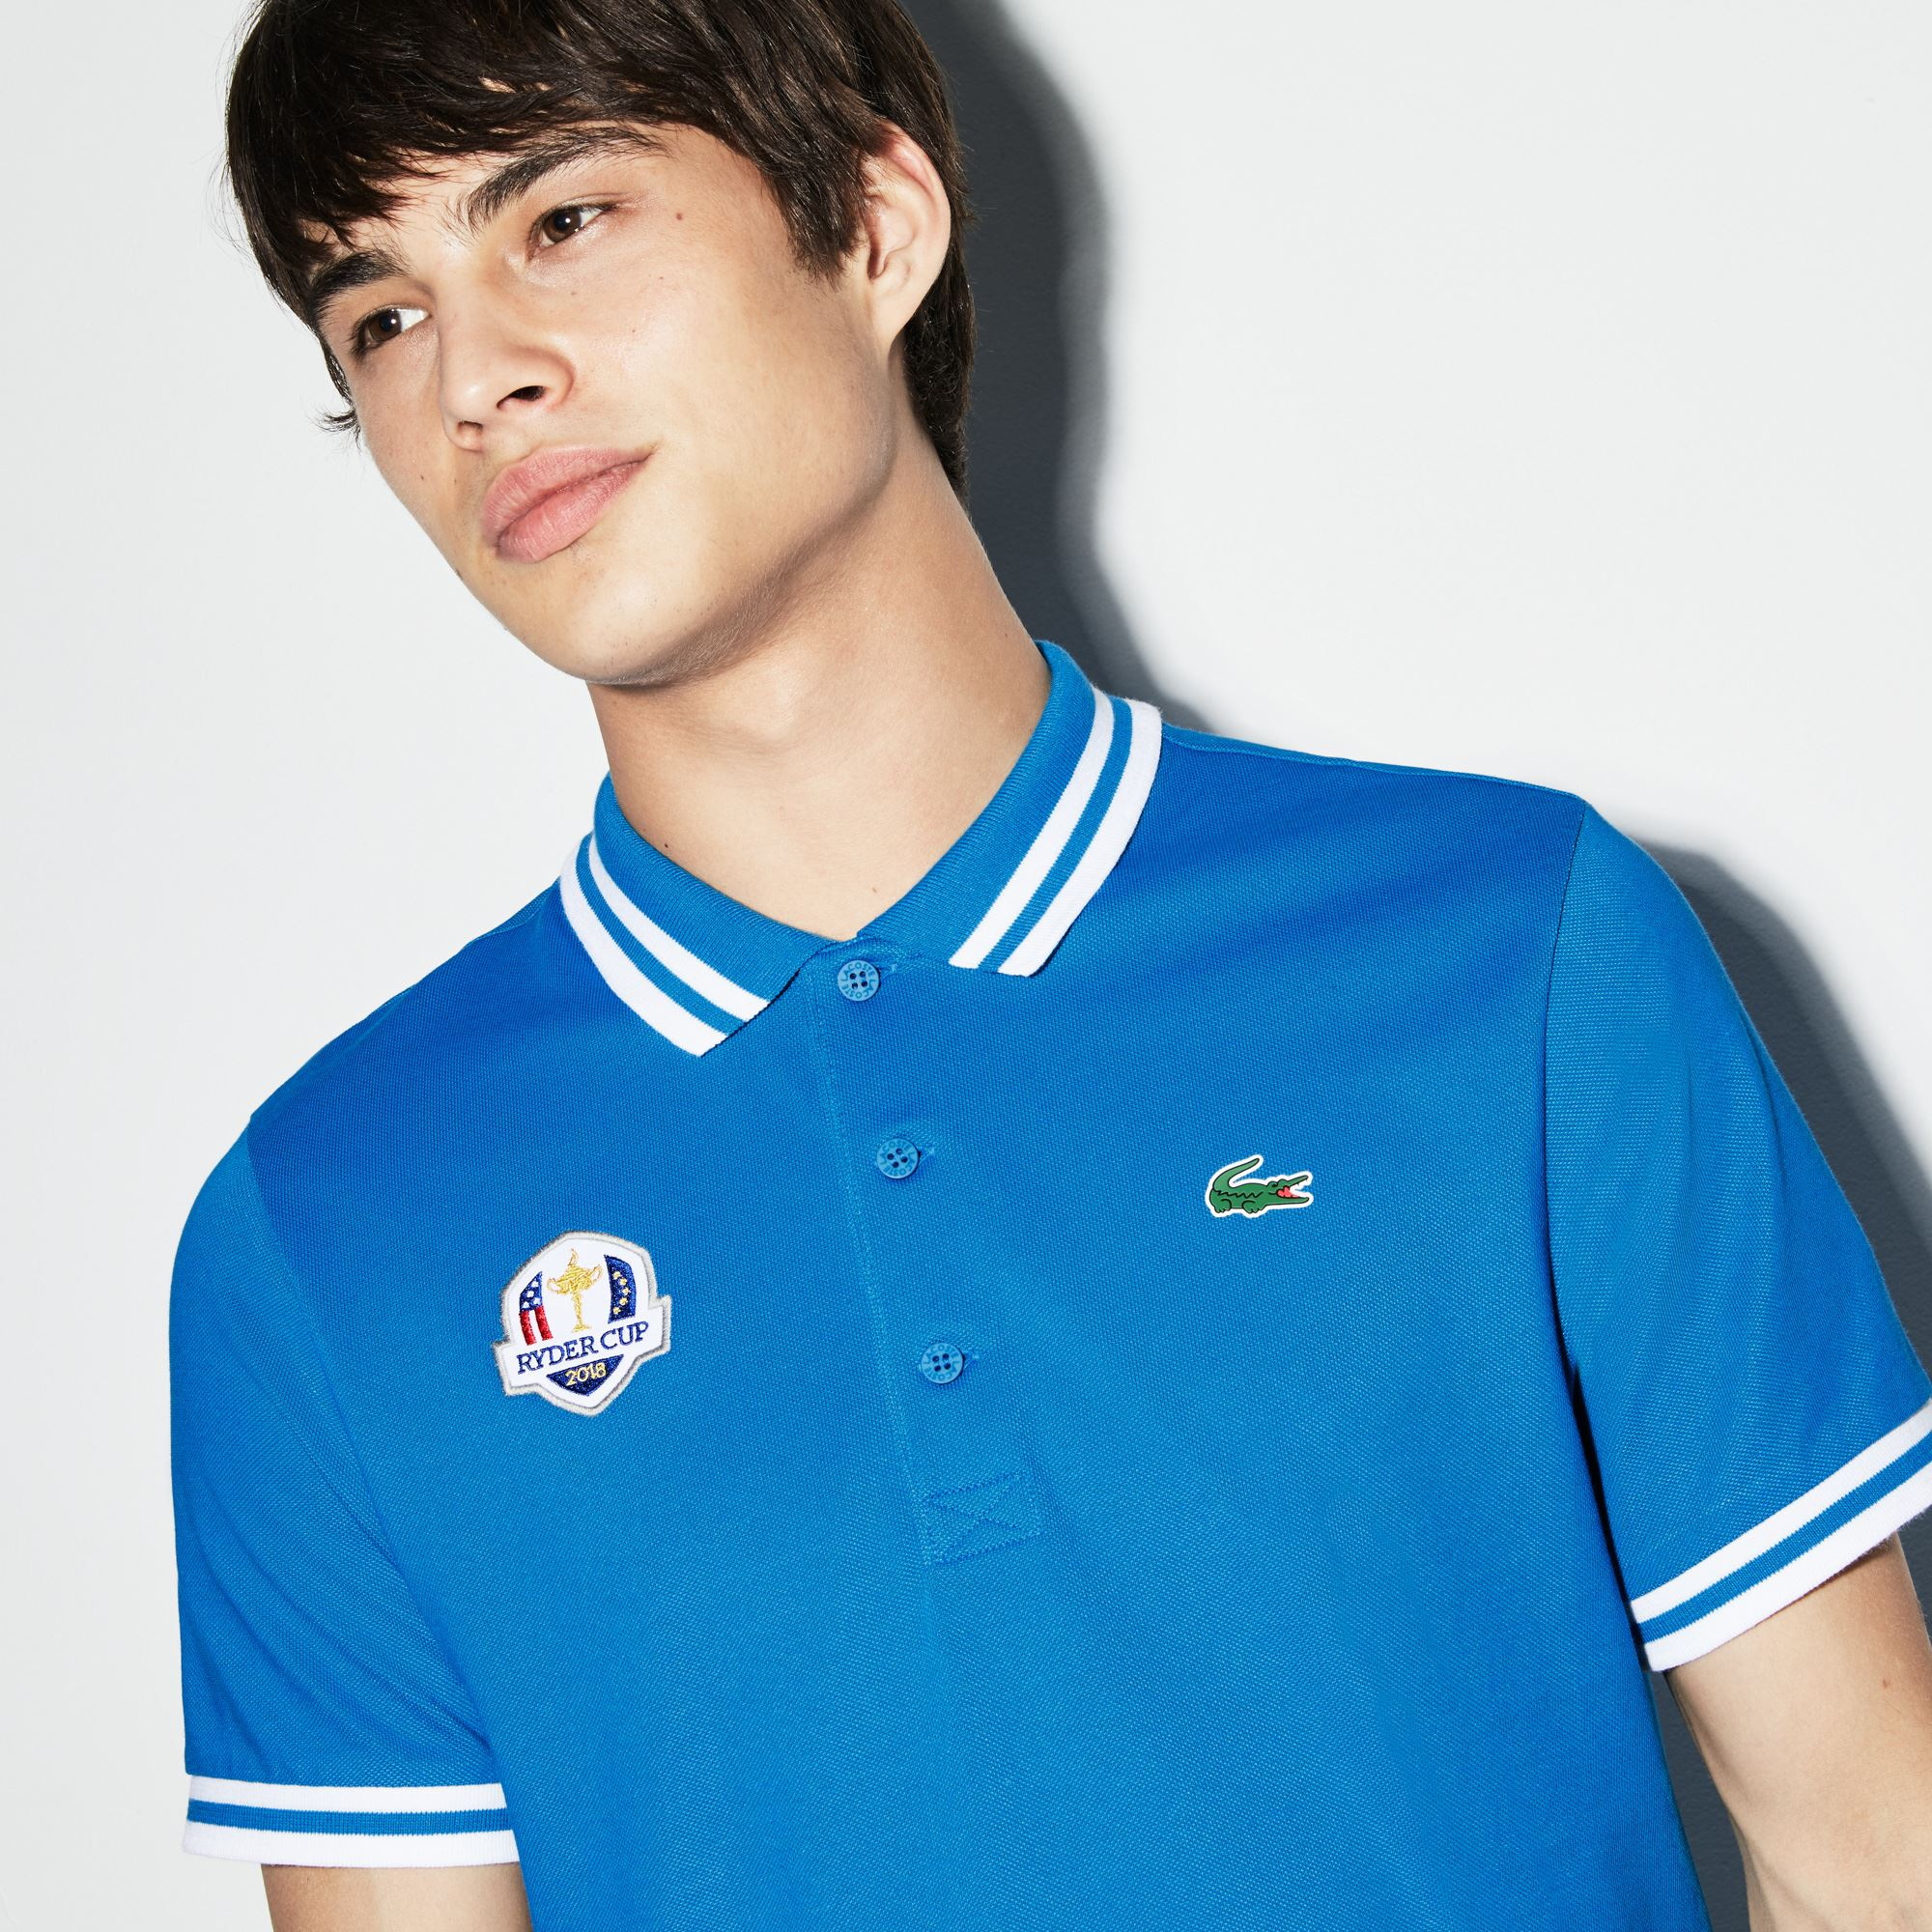 Lacoste - Herren LACOSTE SPORT Ryder Cup Edition Golf Poloshirt - 4